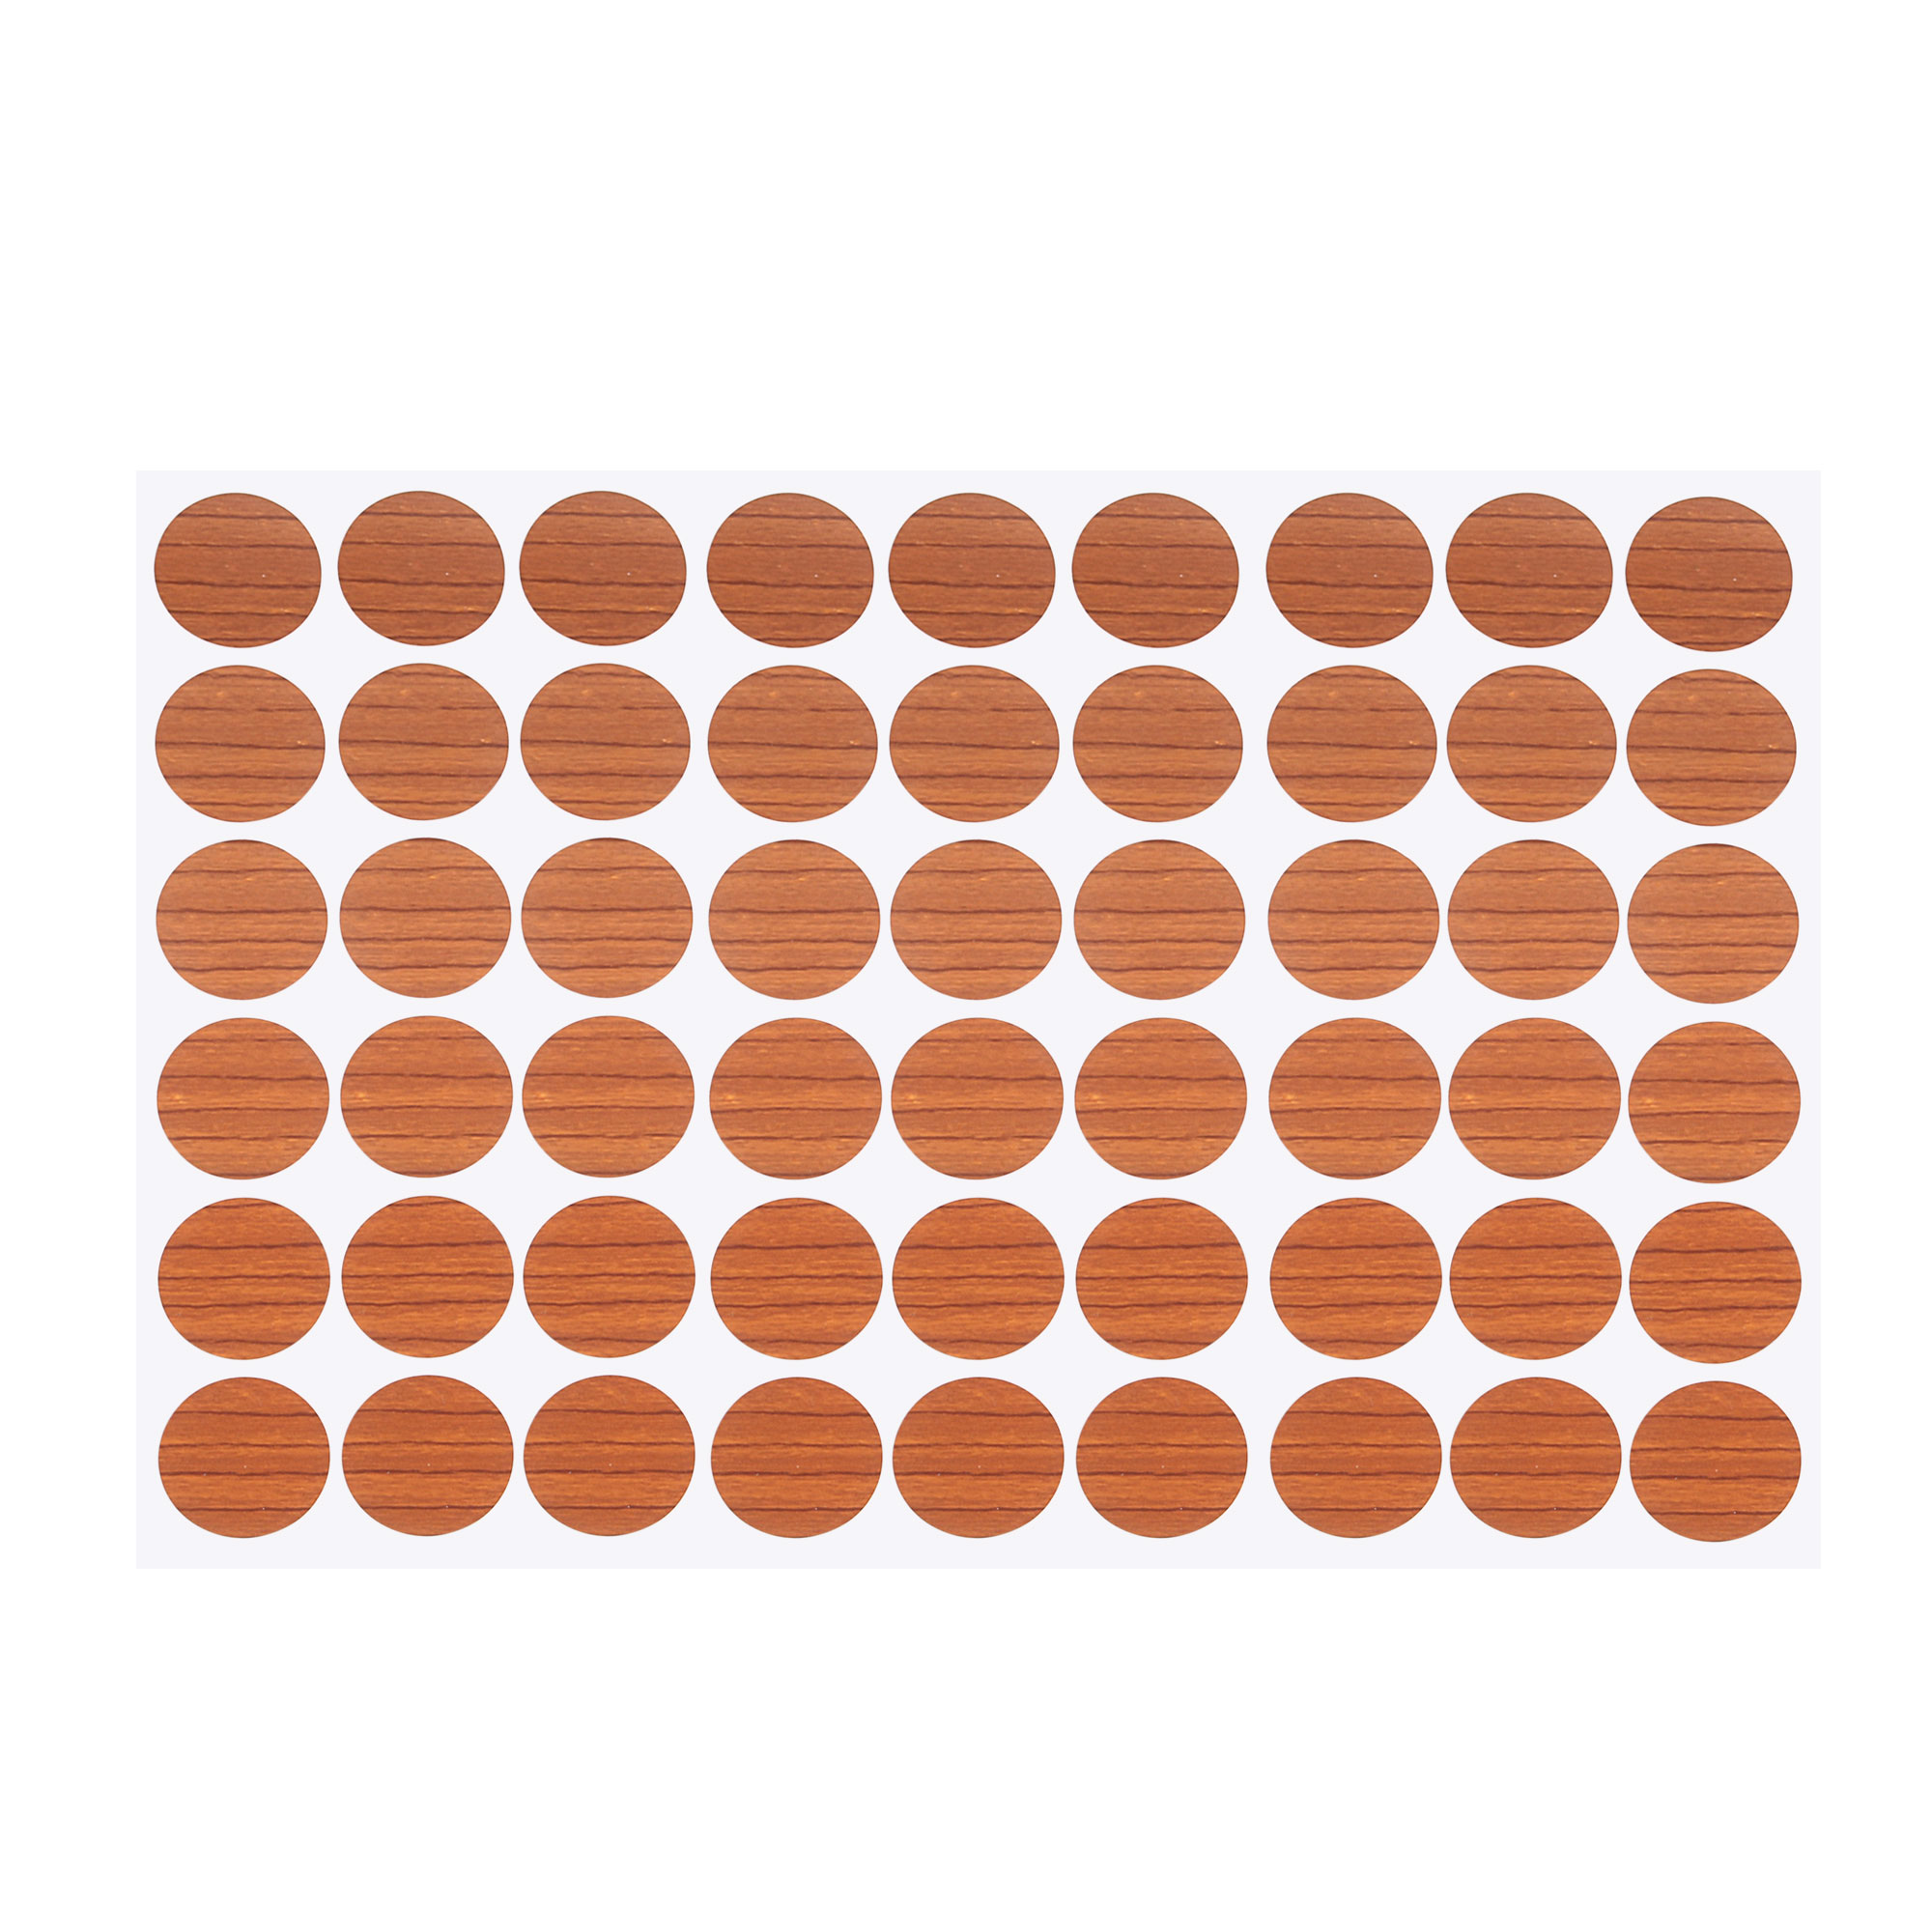 Furniture Self-adhesive Screw Hole Stickers Covers Brown One Sheet 54 in 1